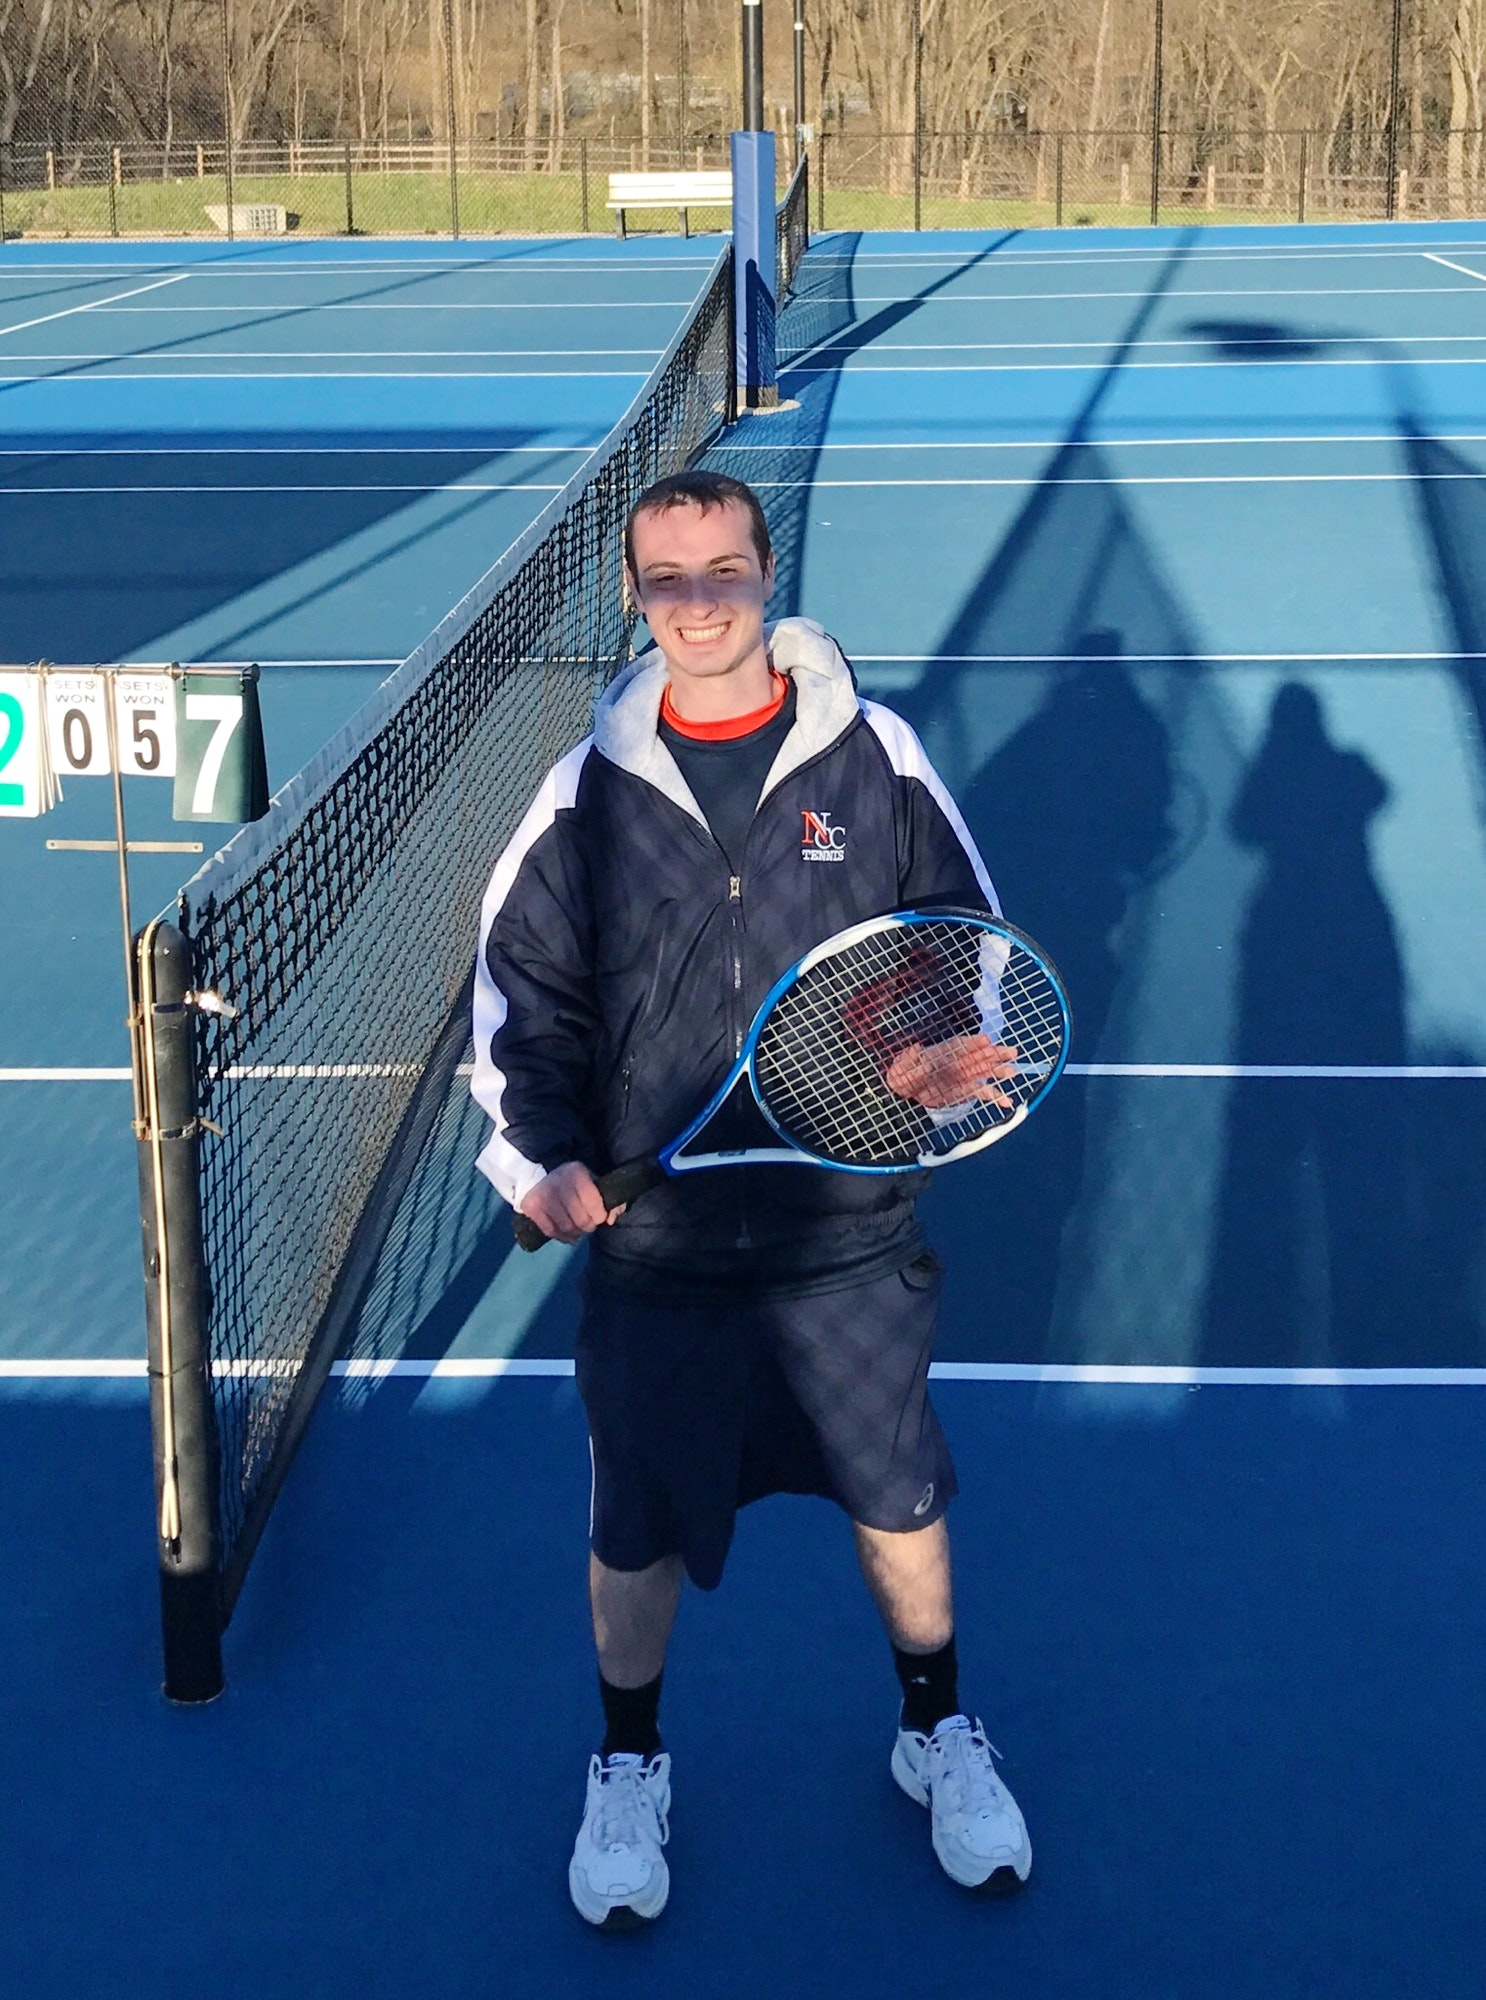 Matt L. teaches tennis lessons in Merrick , NY